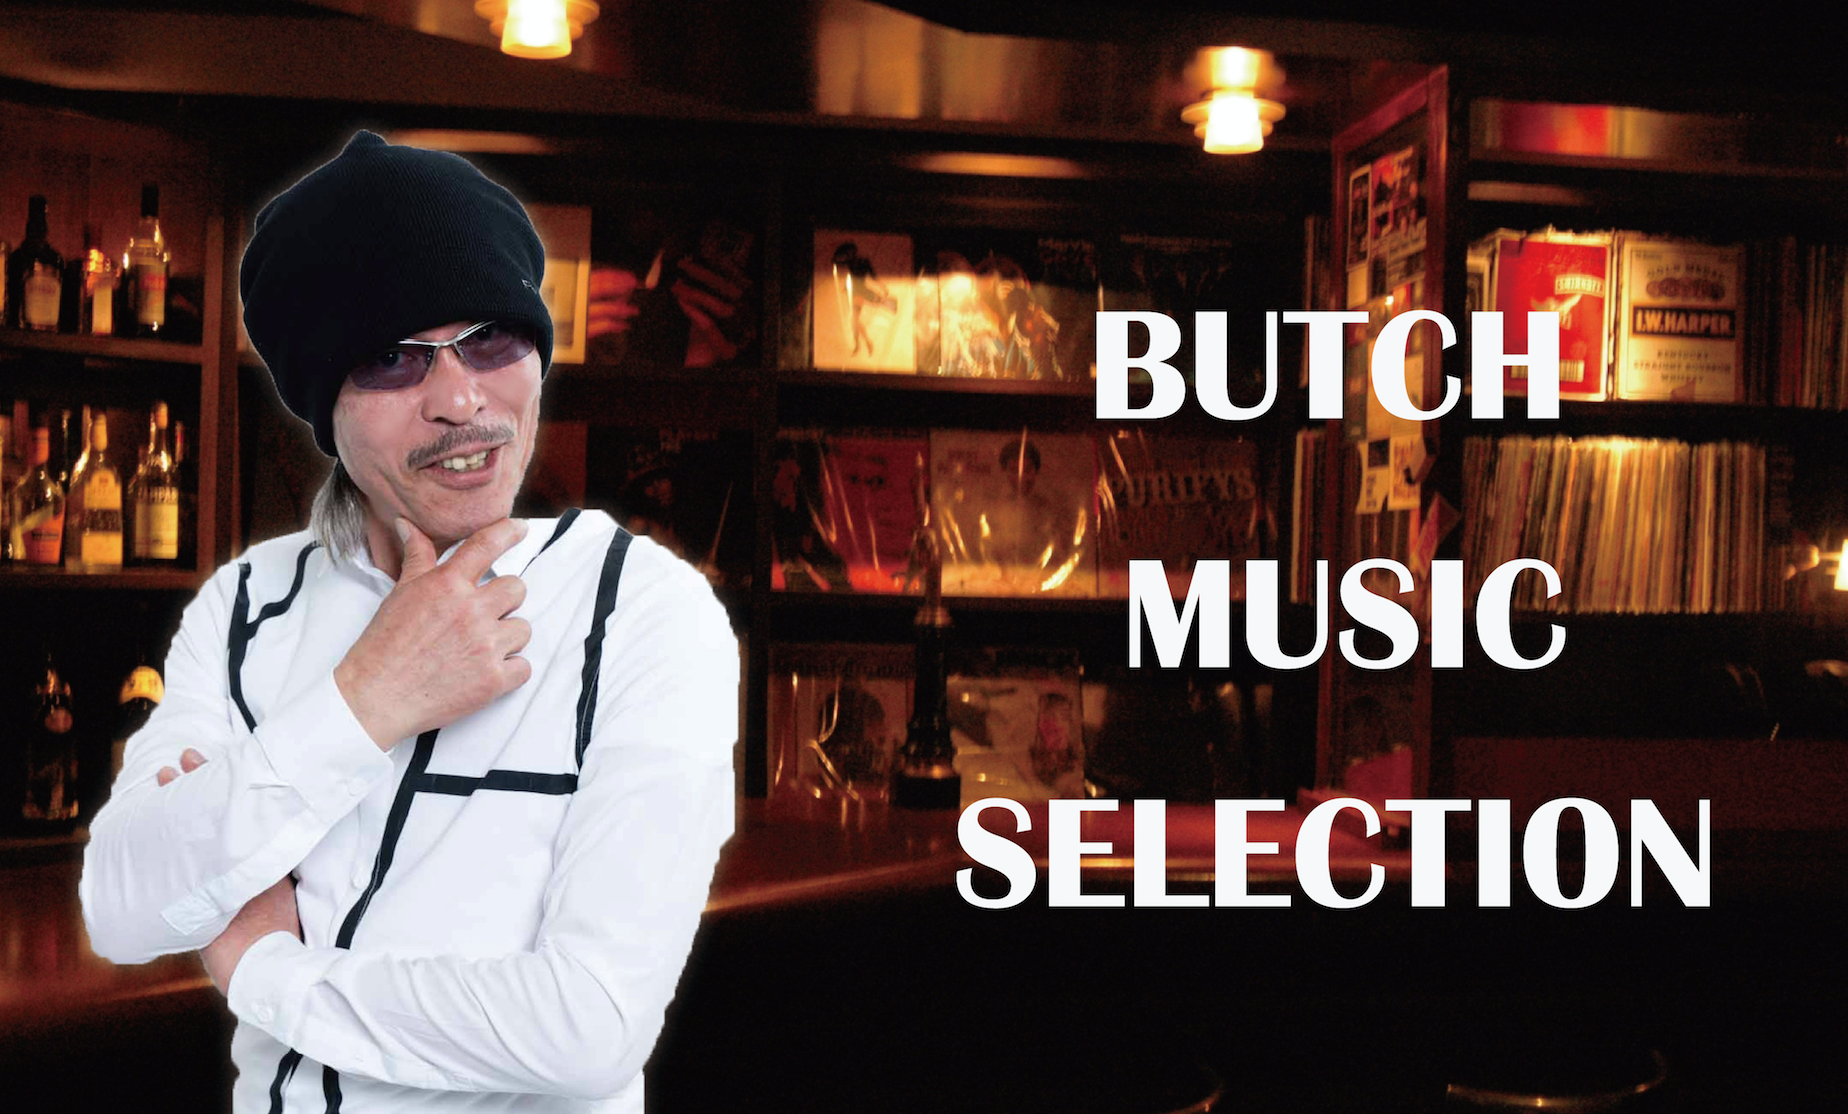 BUTCH MUSIC SELECTION